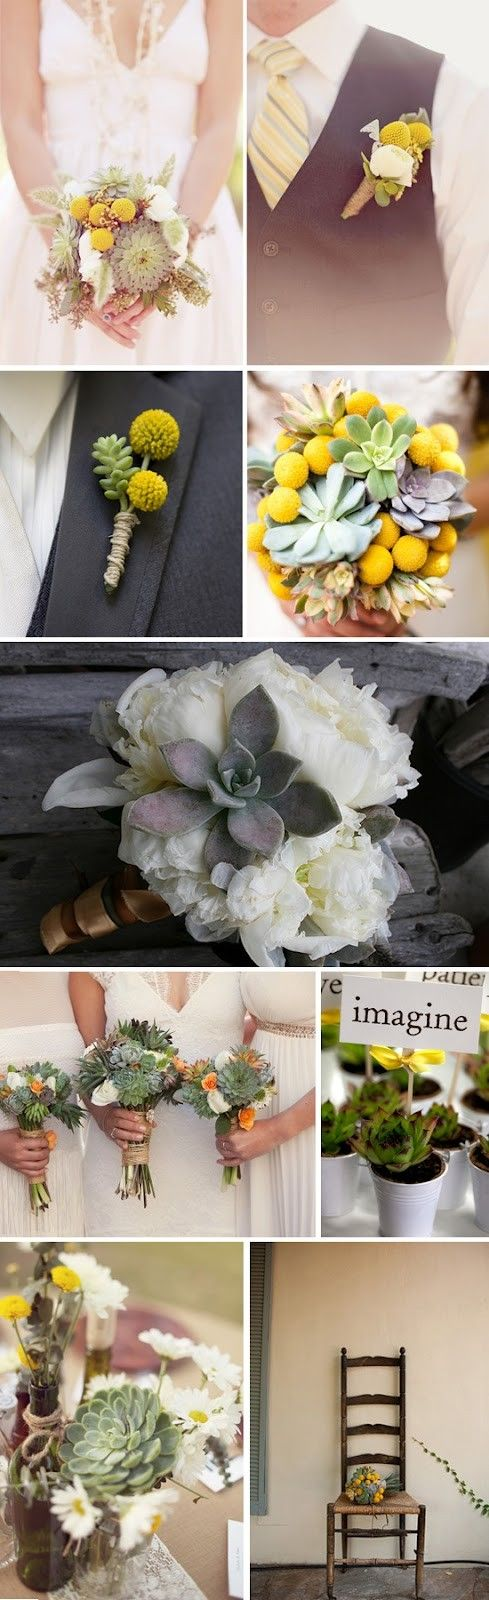 summer wedding flowers online - for more amazing wedding ideas, tools and tips visit us at Bride's Book